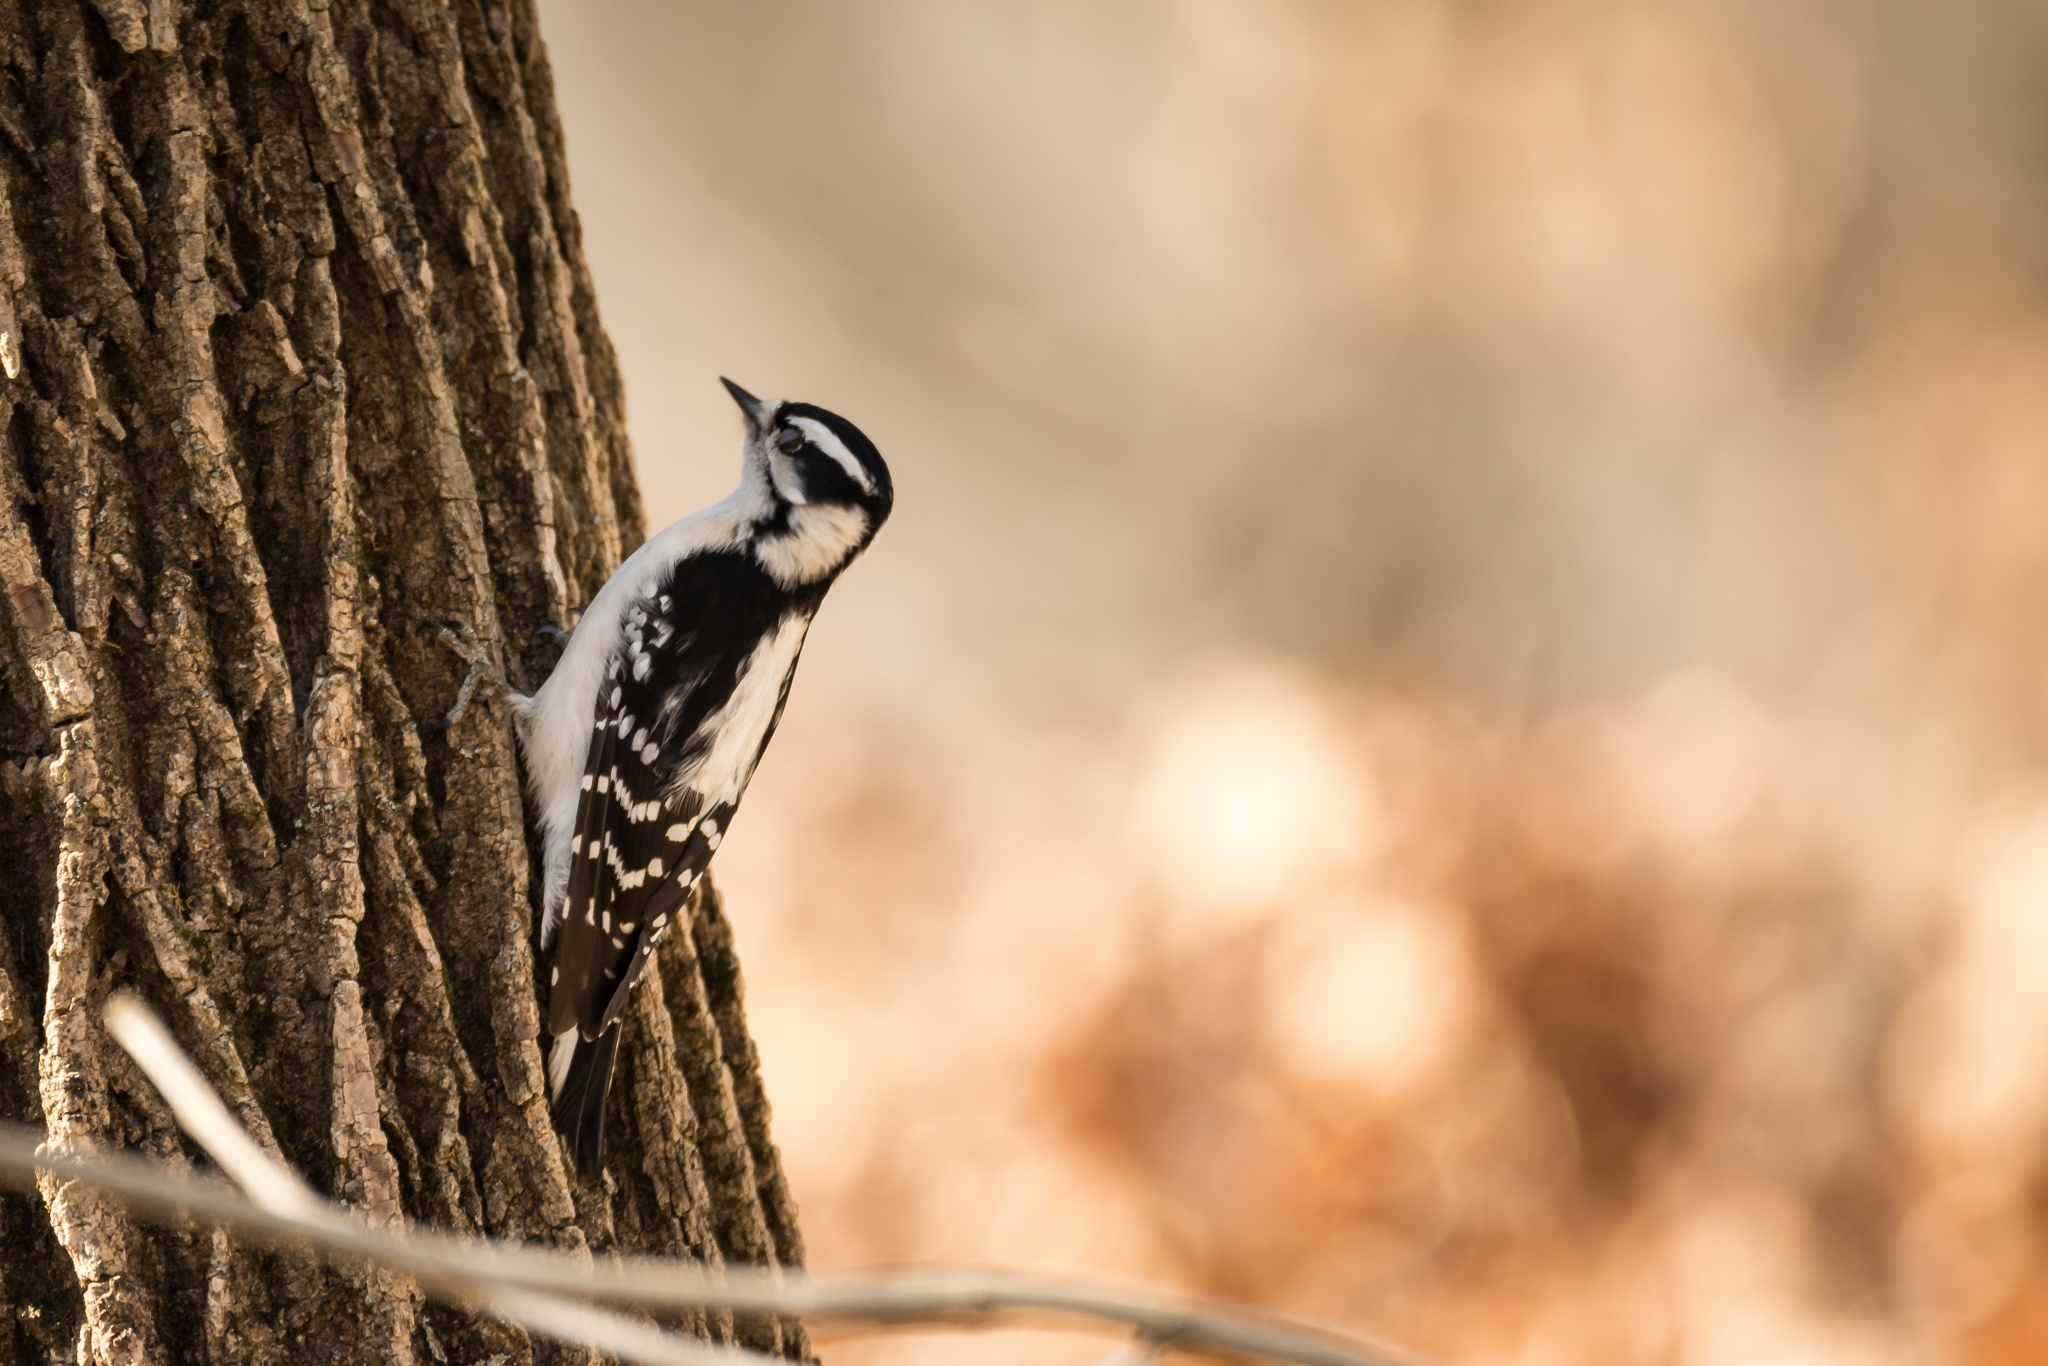 Downy Woodpecker by KarenSeddon